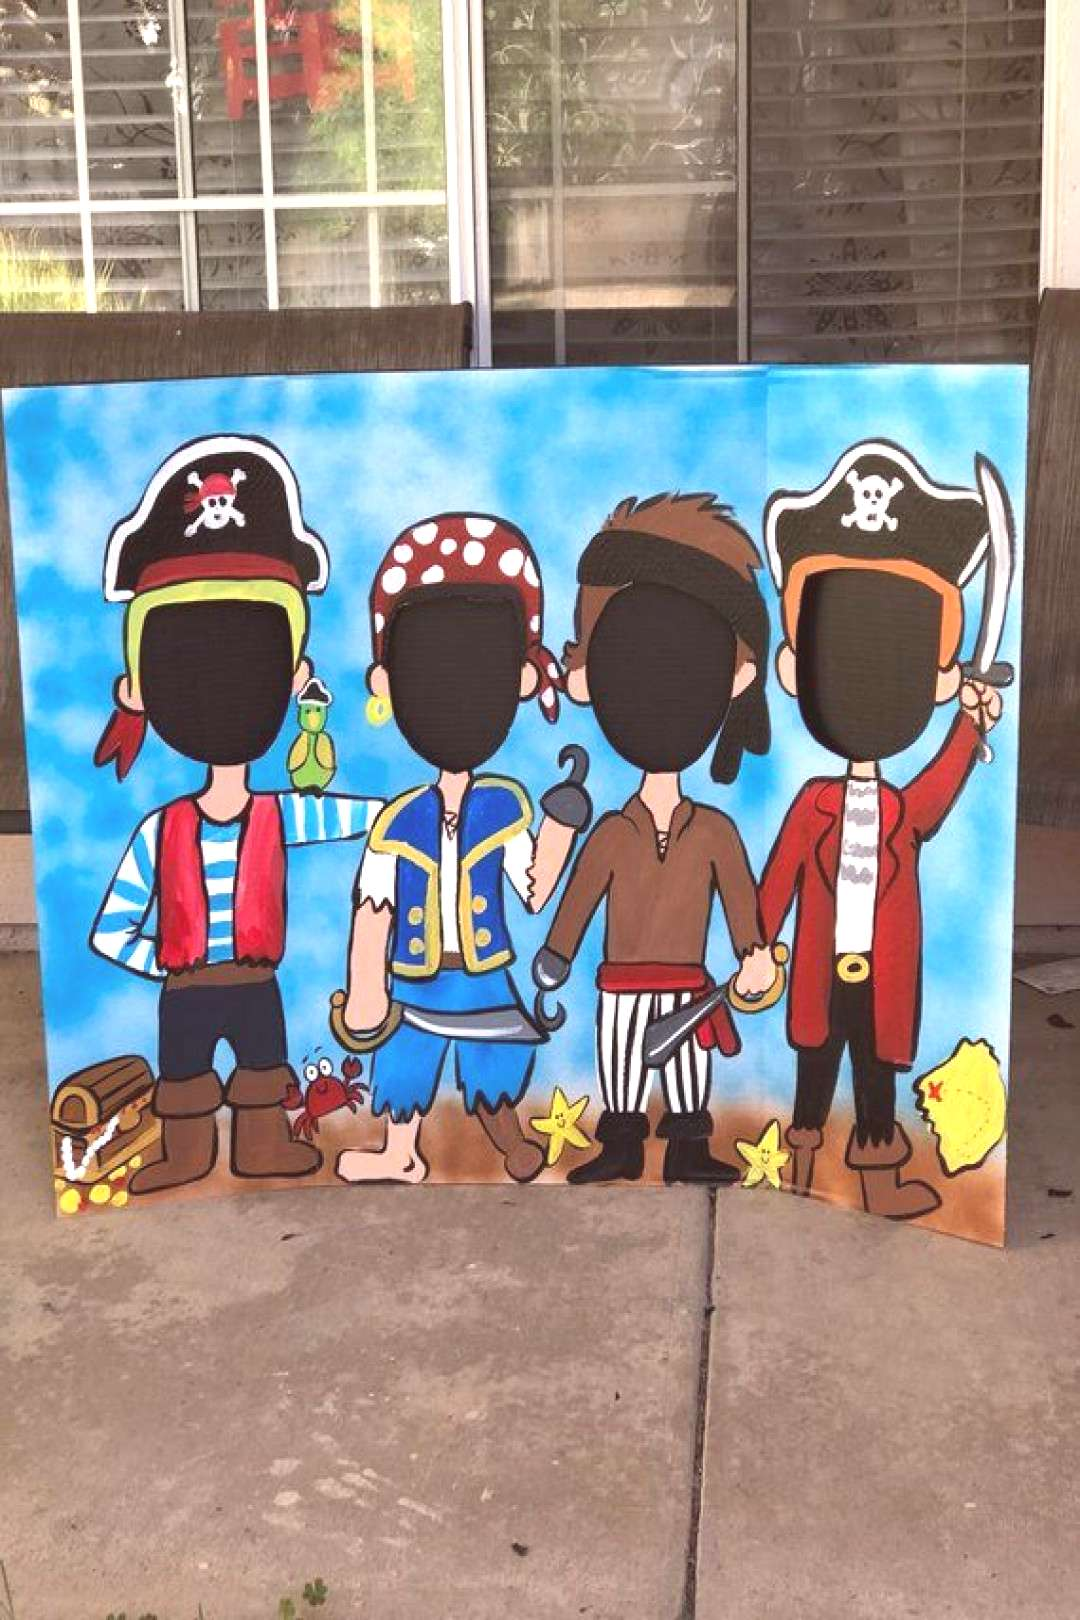 Pirate danniversaire Pirate Pirate Party Photo Op   Etsy